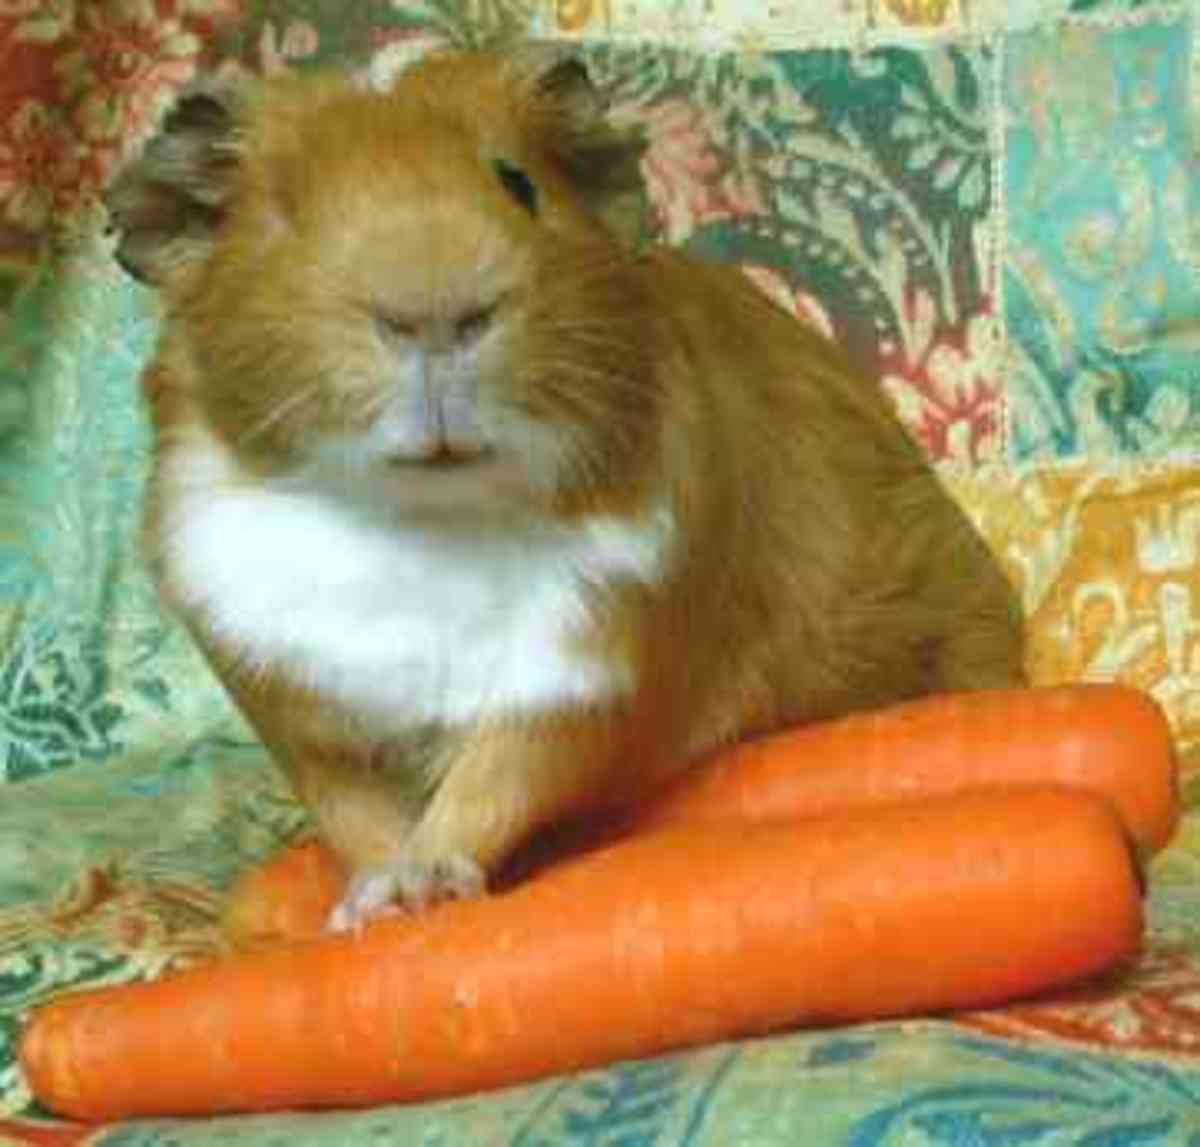 Goes in as carrots, comes out as beans